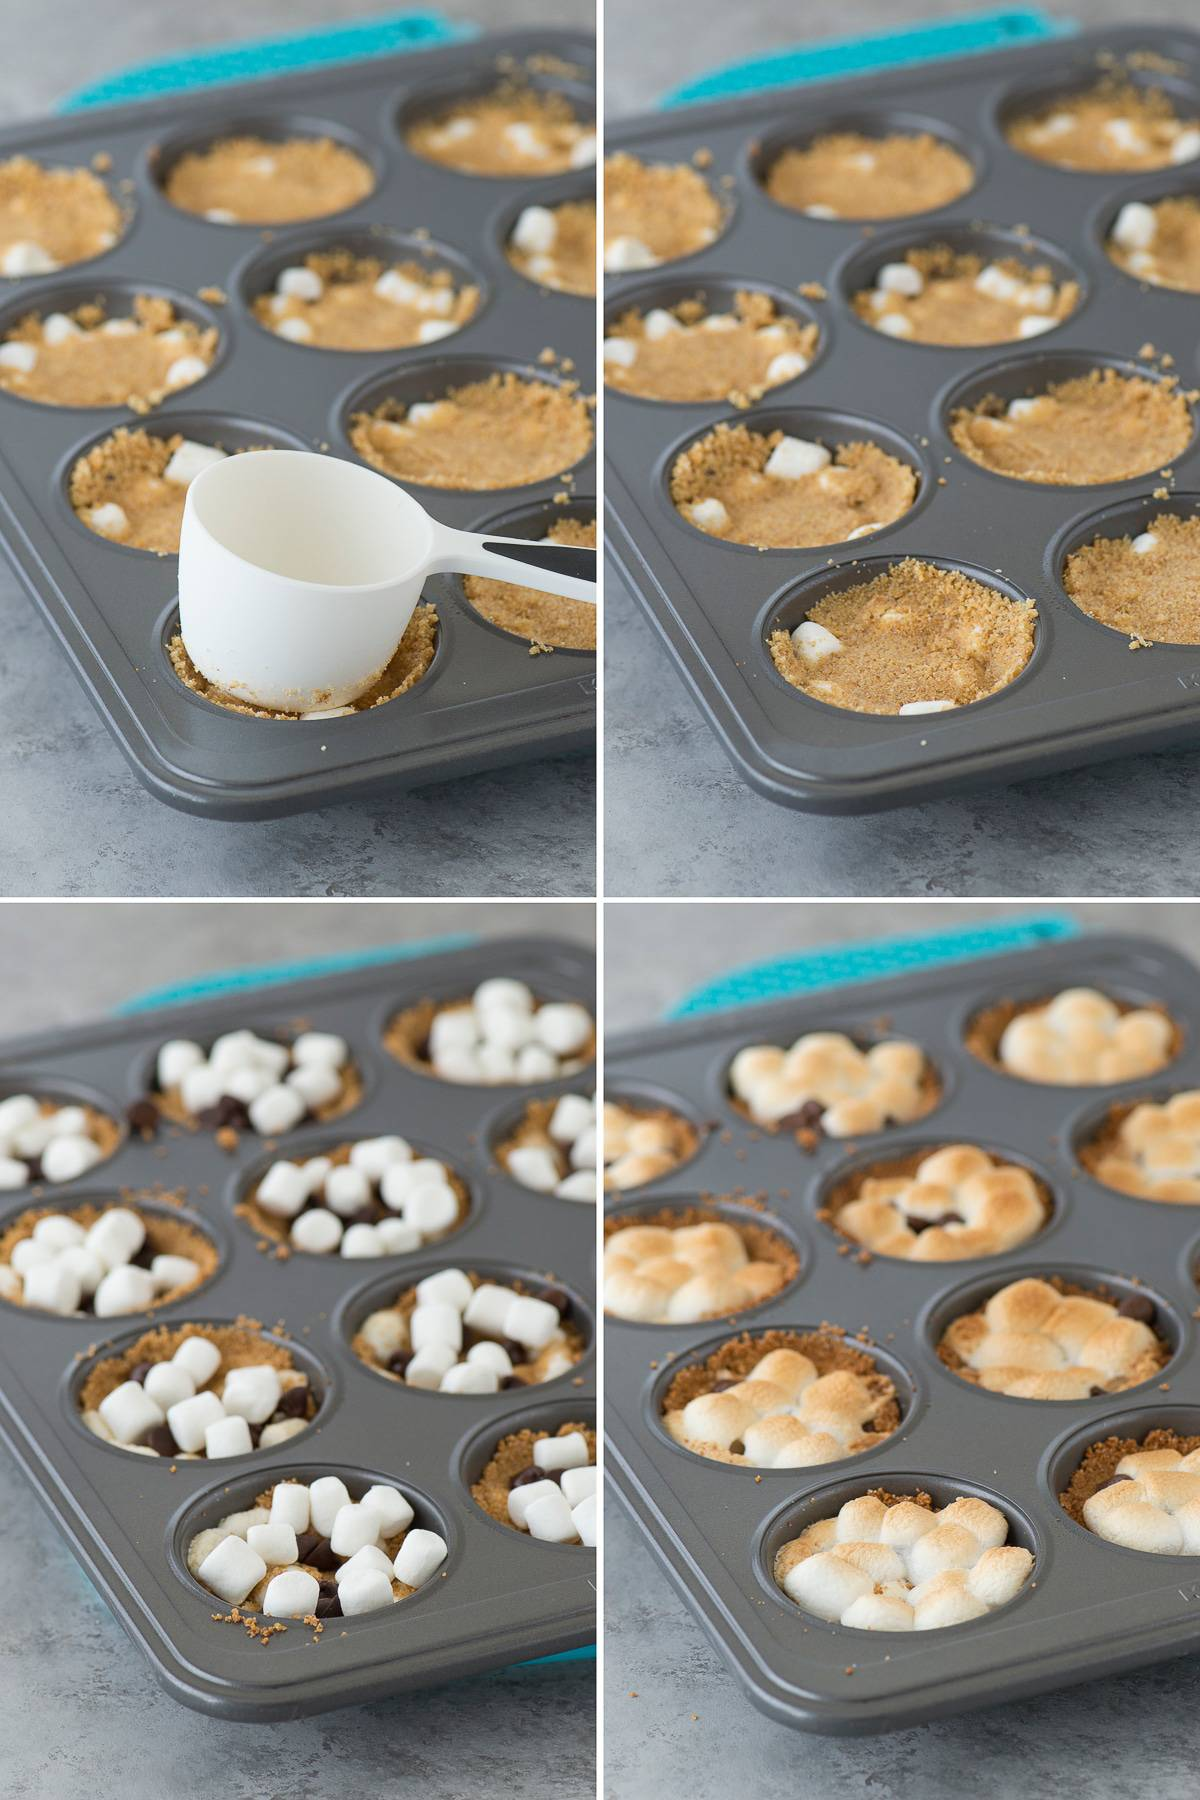 photo collage - Using a measuring cup to push down on graham cracker cups to made these delicious indoor S'mores Cups in a muffin pan.